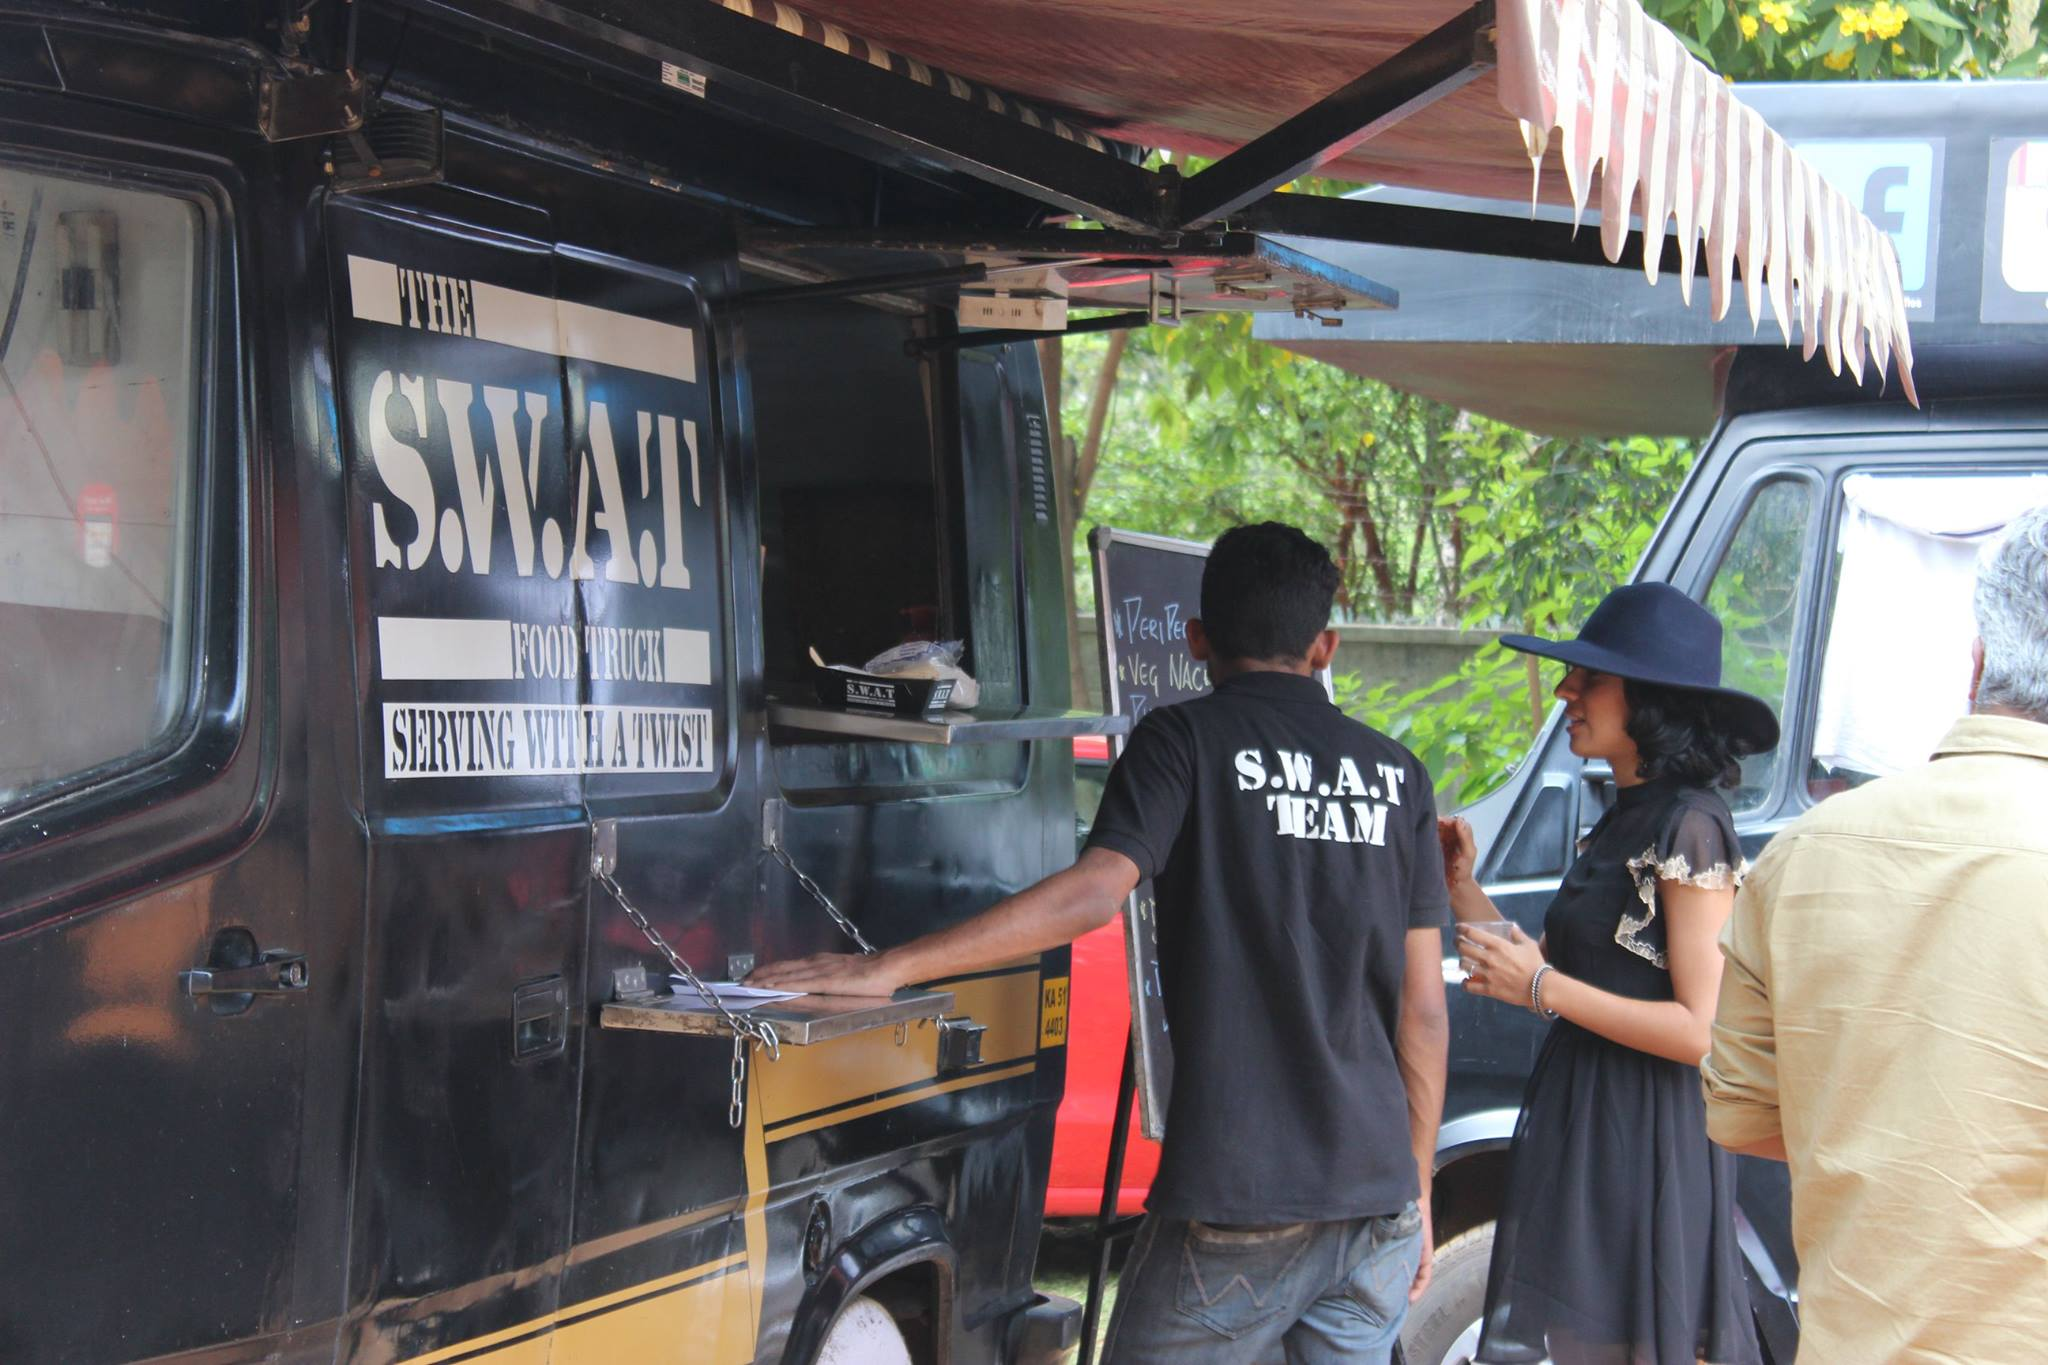 S.W.A.T. Food Truck in Bangalore